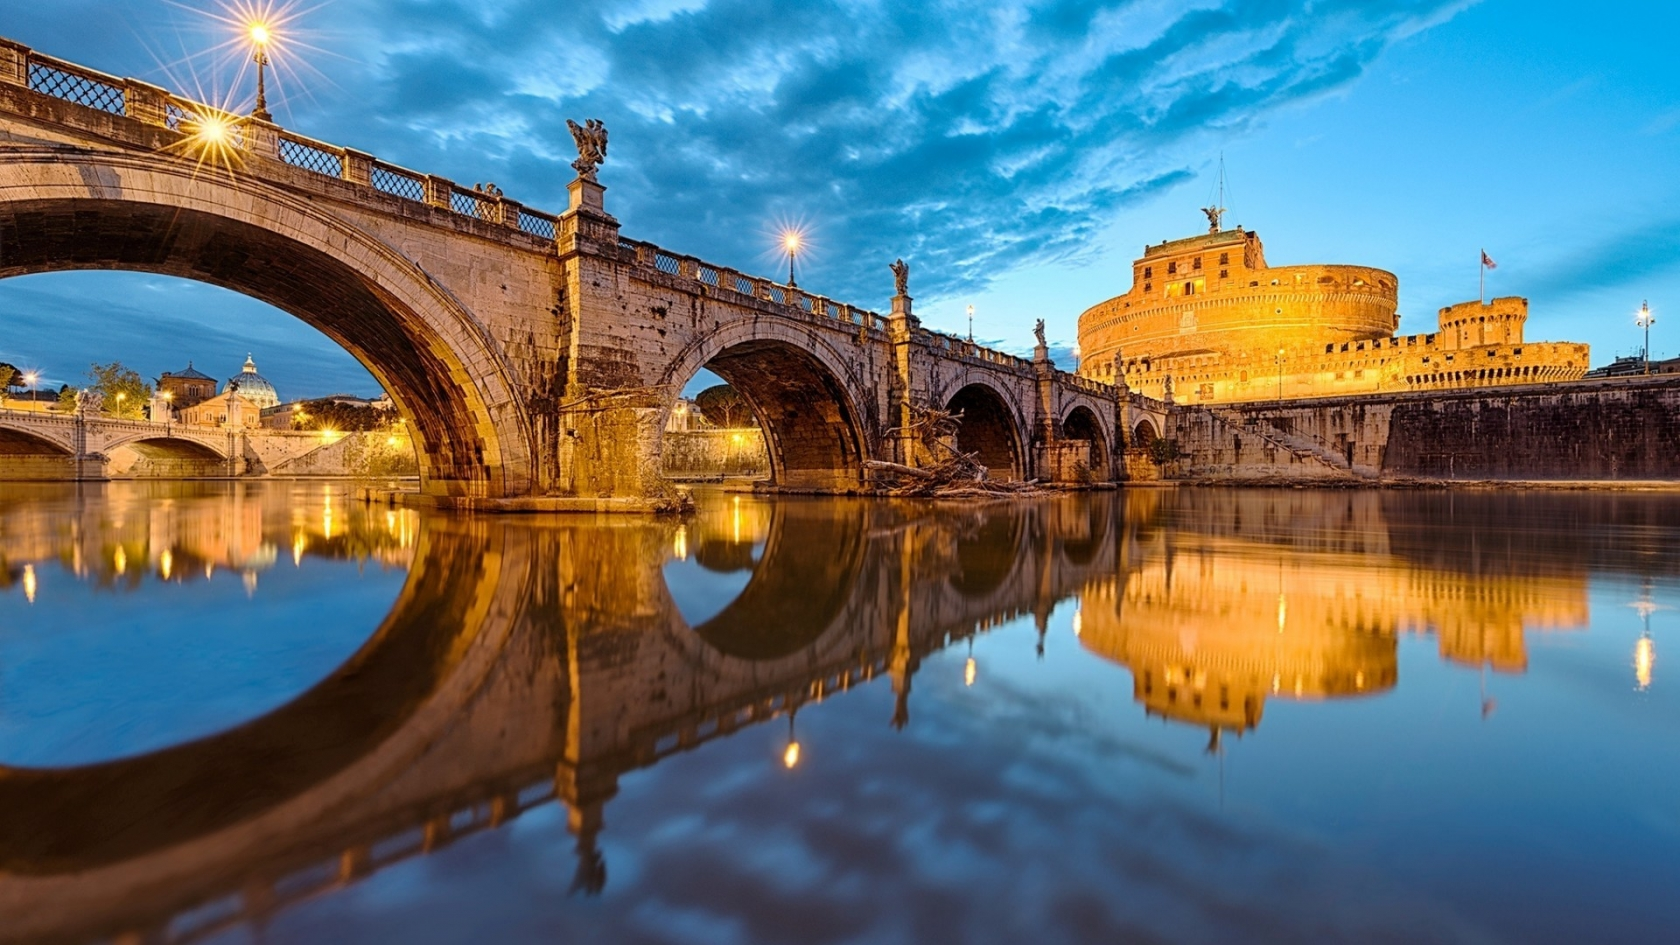 View of St Angelo Bridge for 1680 x 945 HDTV resolution